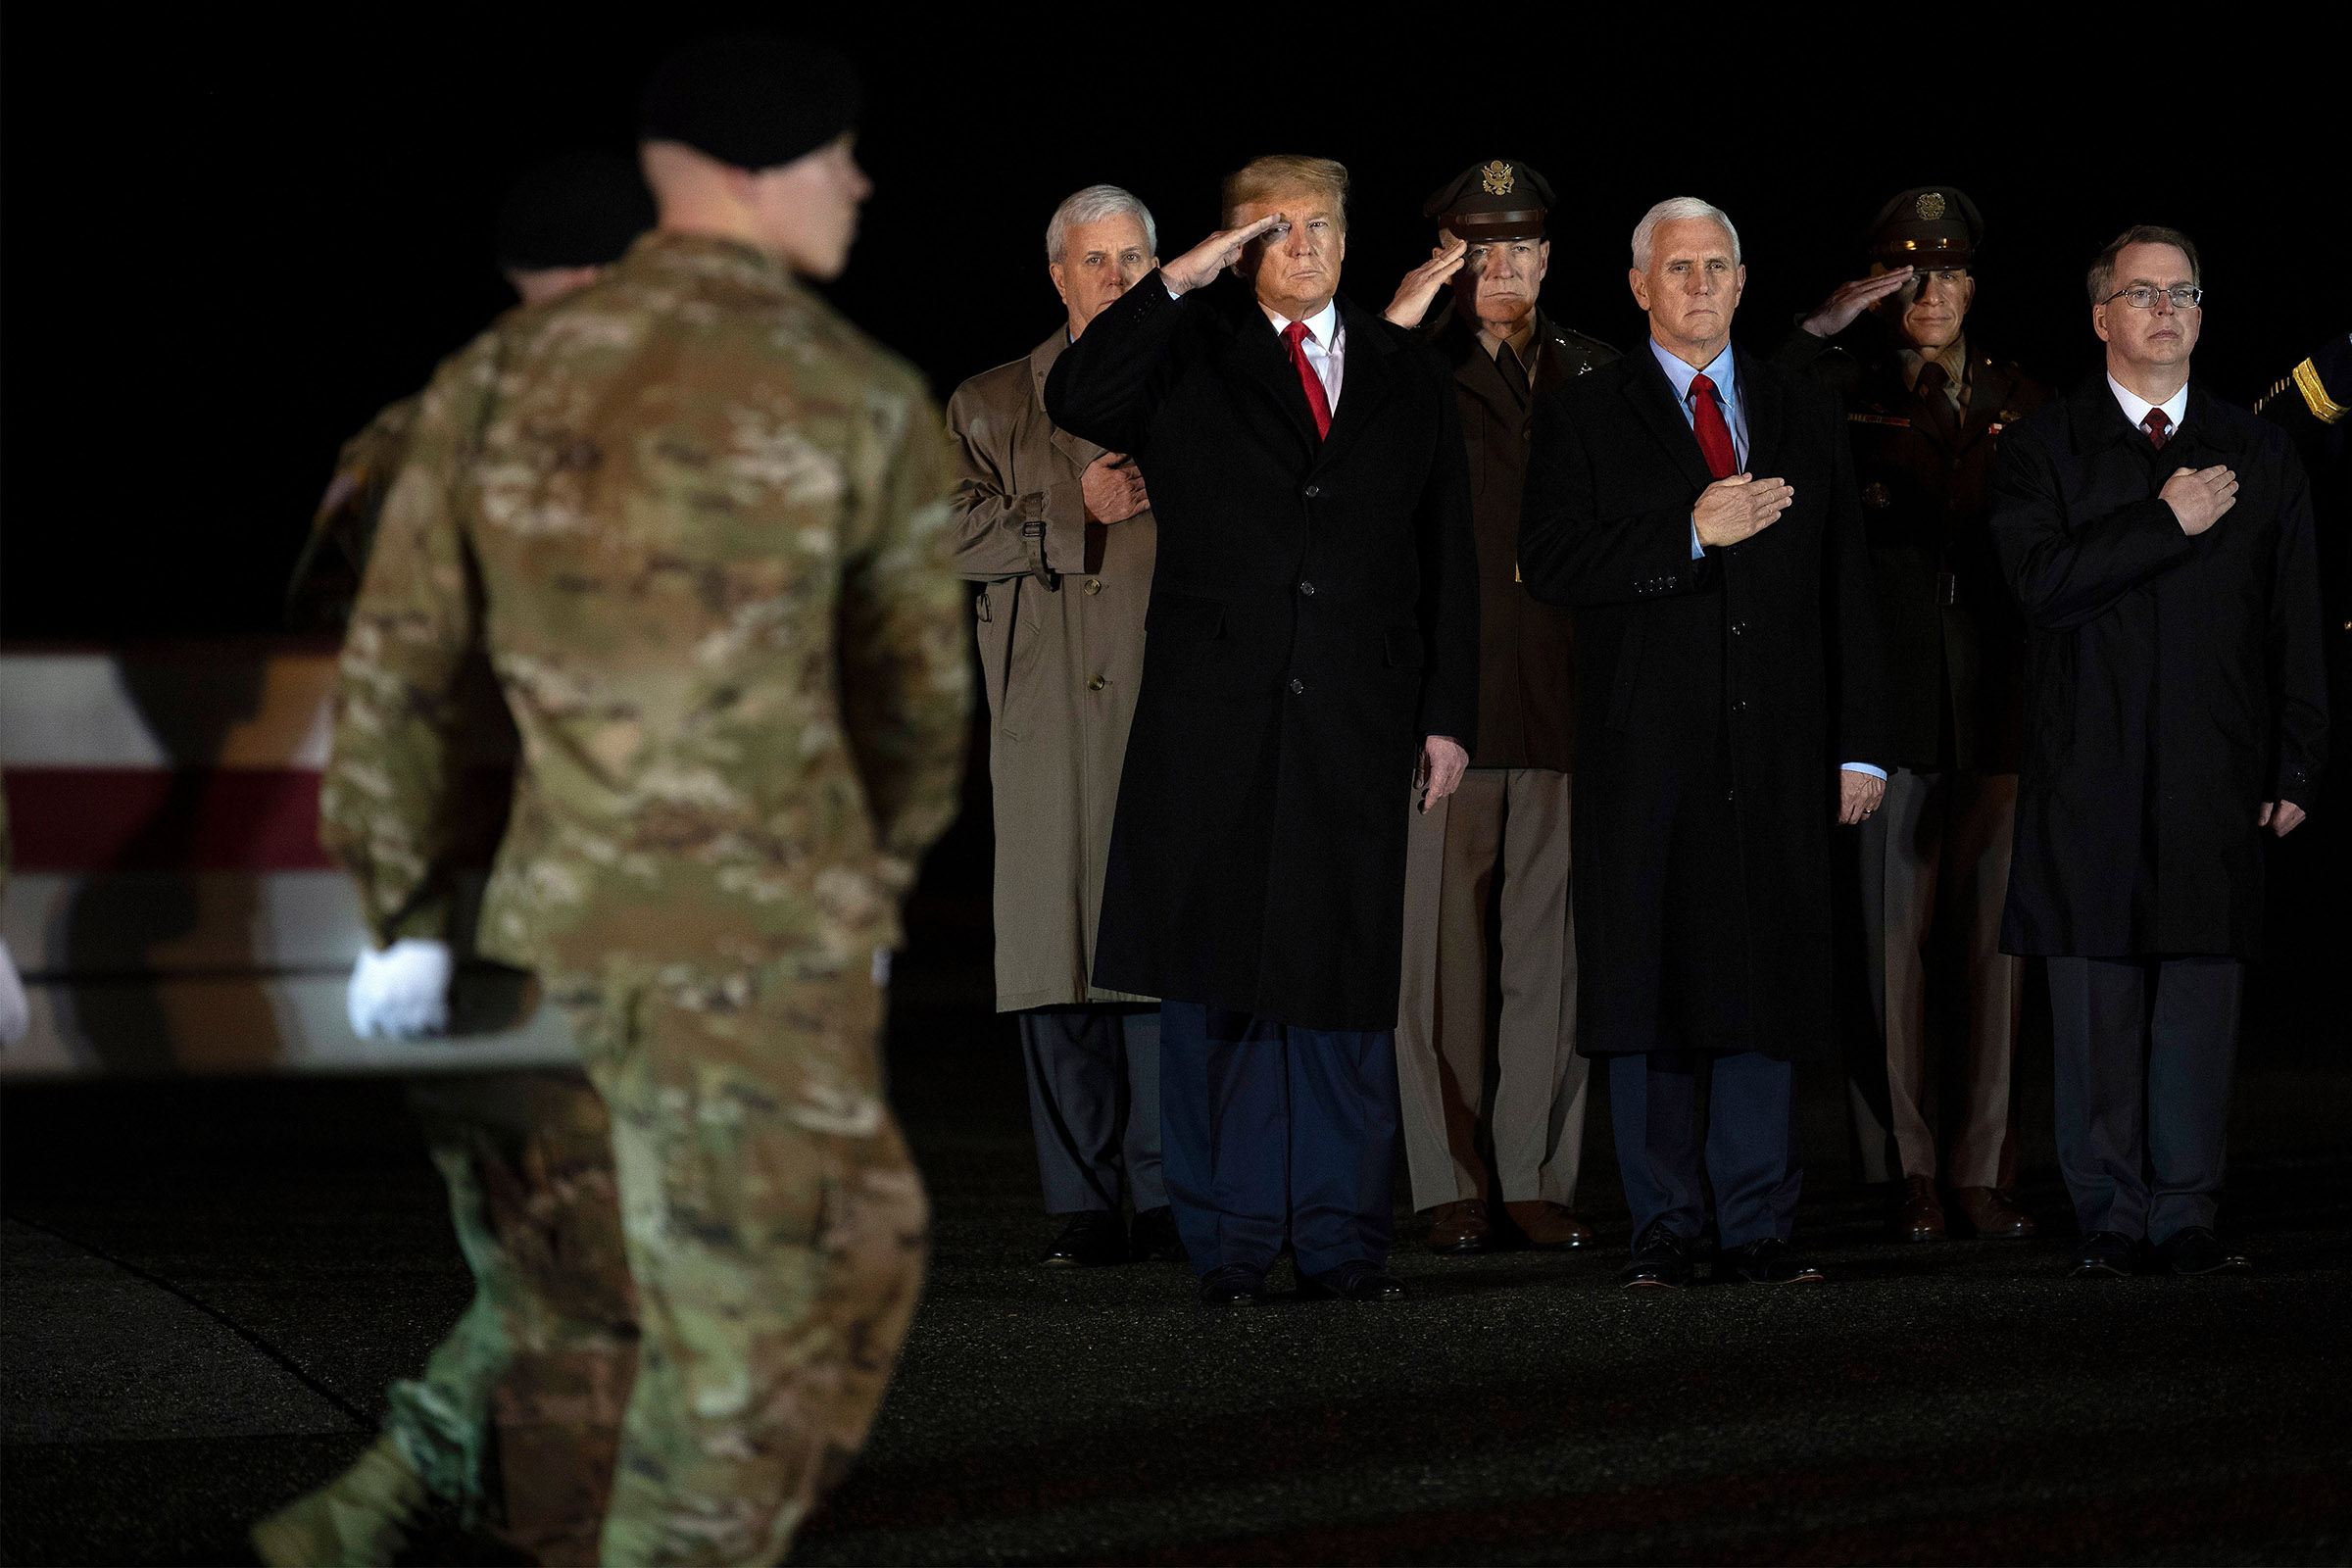 US President Donald Trump (L) and Vice President Mike Pence (C) observe the dignified transfer of two US soldiers killed in Afghanistan, at Dover Air Force Base in Dover, Delaware, on Feb. 10, 2020.